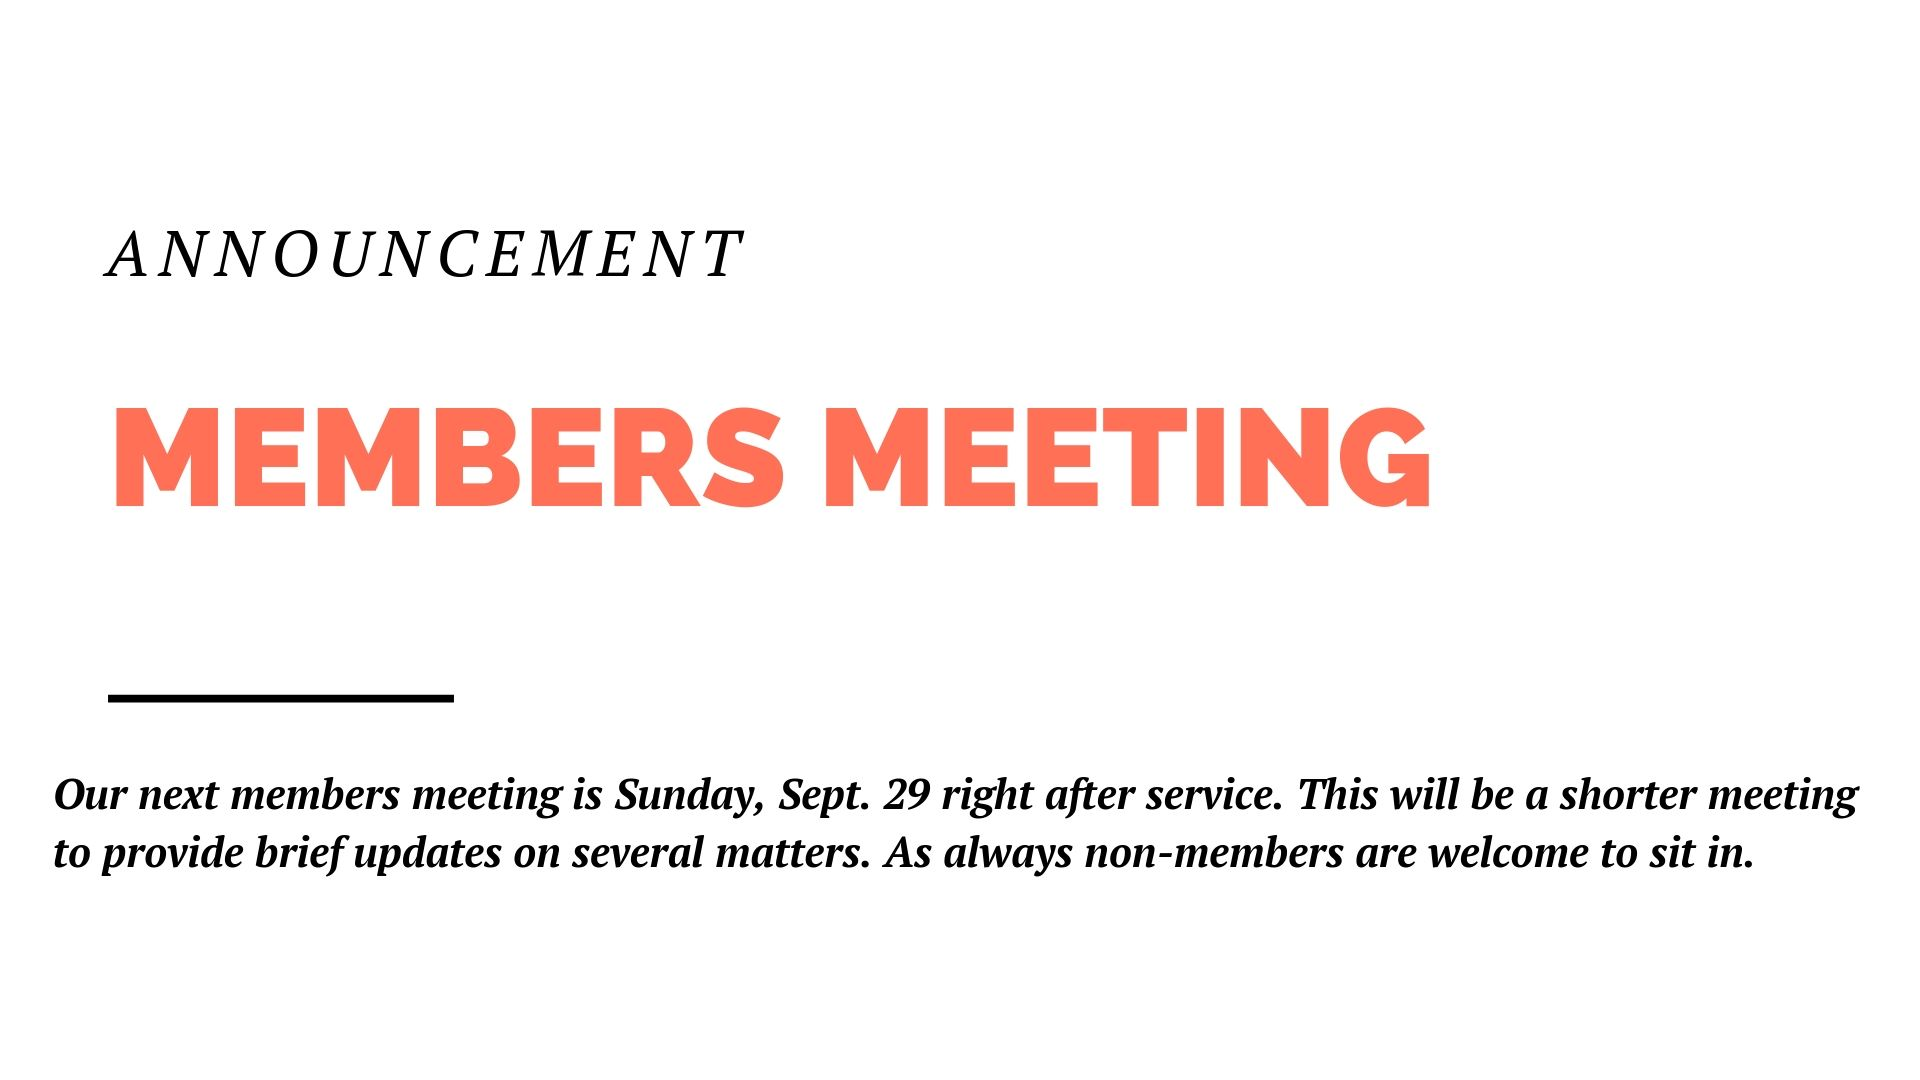 Our next members meeting is Sunday, Sept. 29 right after service. This will be a shorter meeting to provide brief updates on several matters. As always non-members are welcome to sit in.